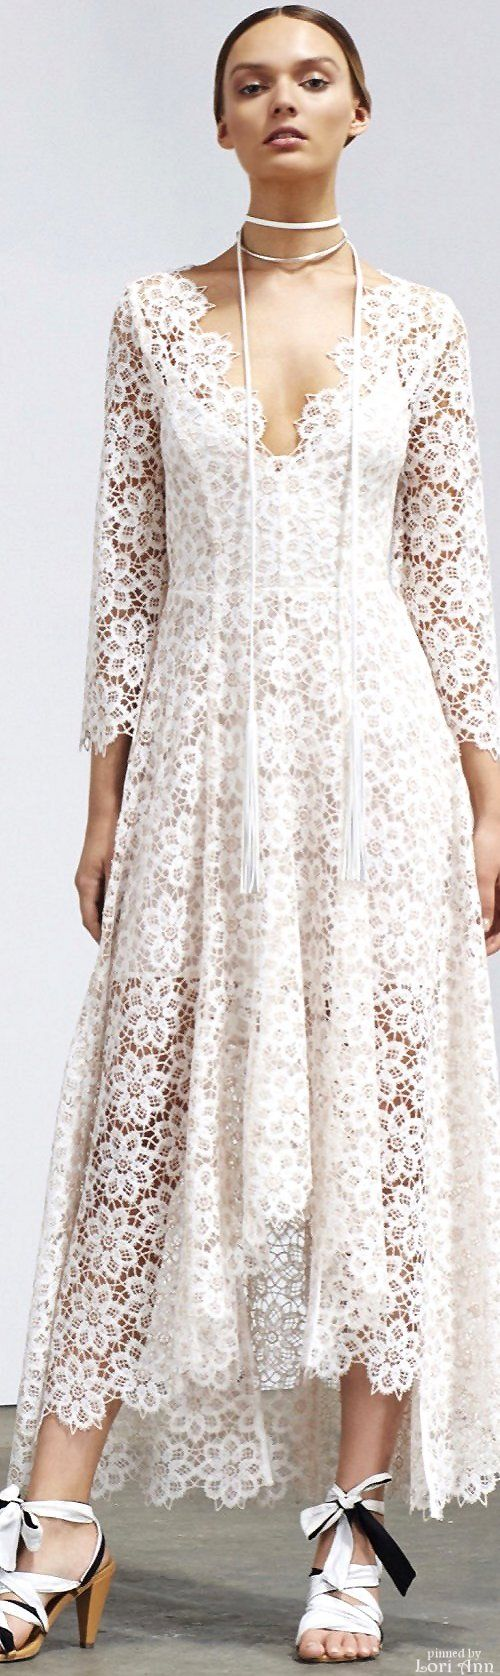 Zimmermann Resort 2016